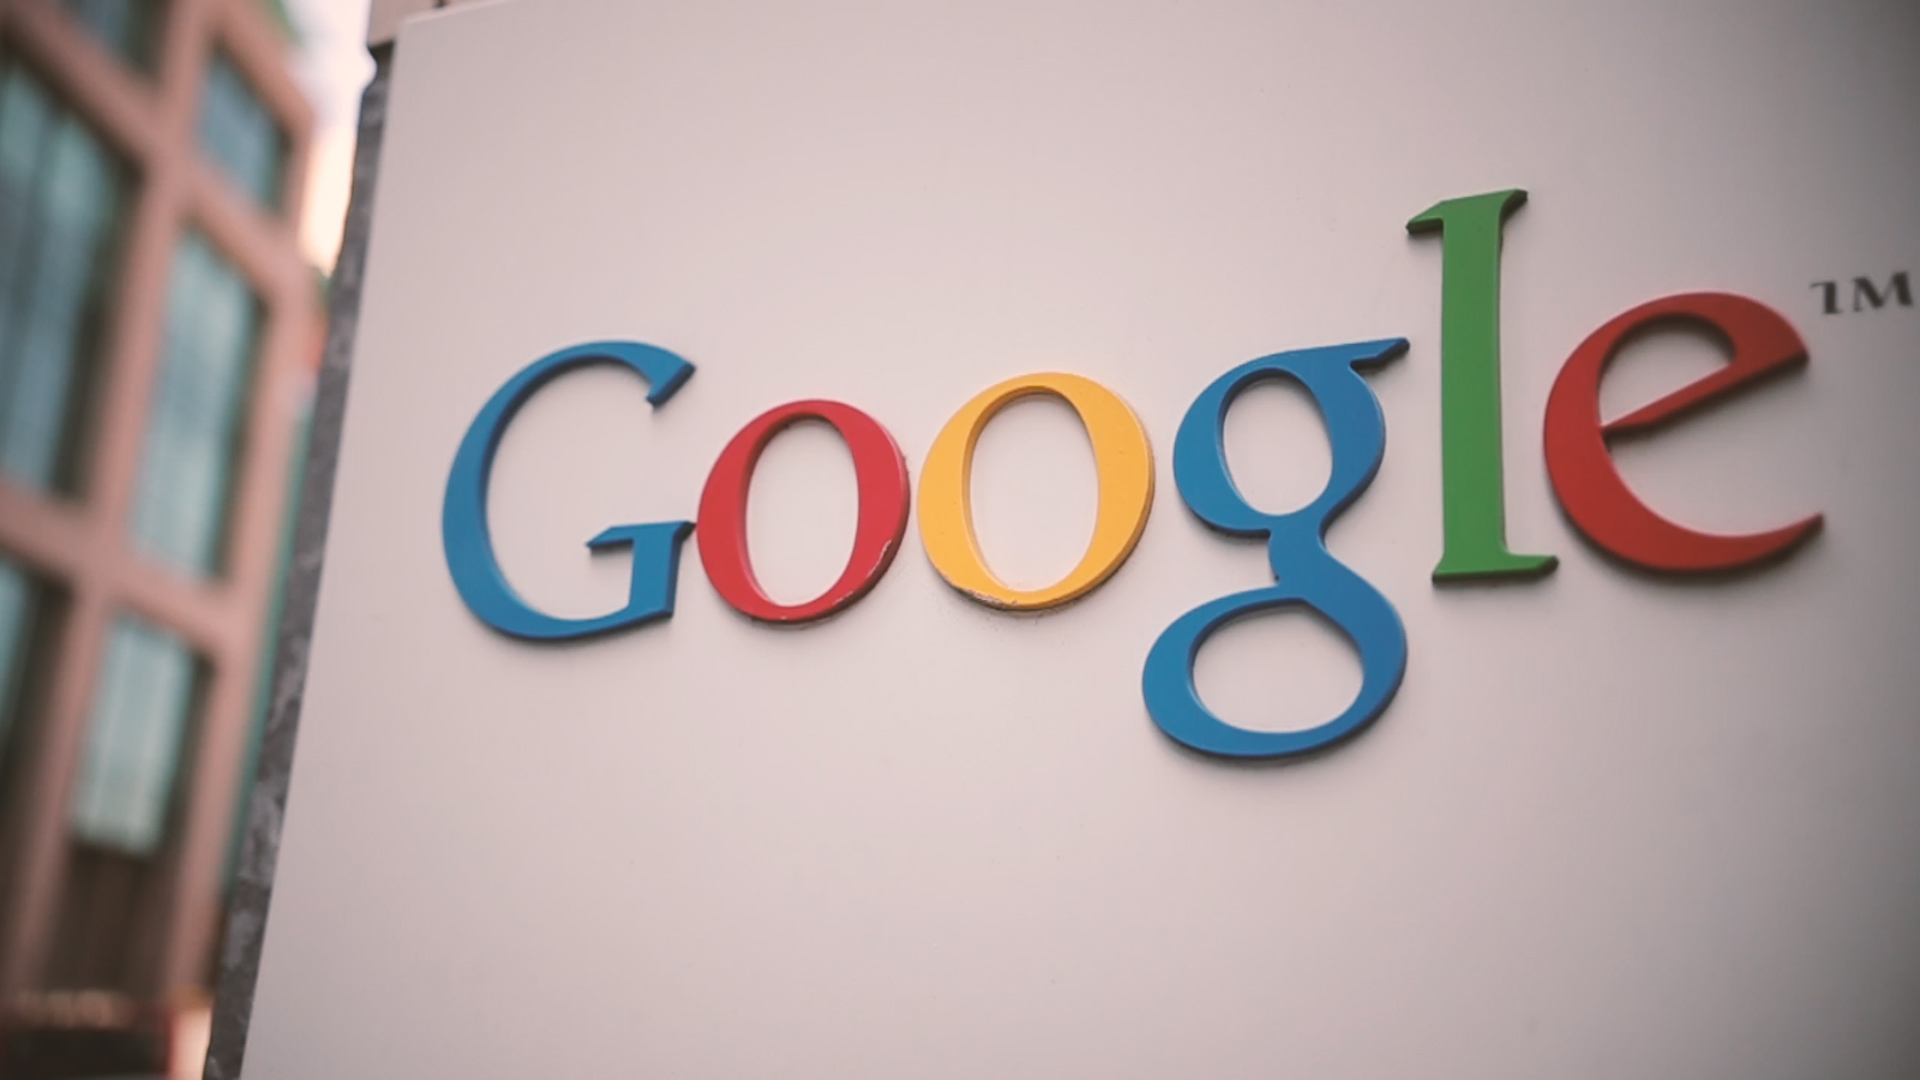 Google Acquires Qwiklabs For Developers To Teach Cloud Skills